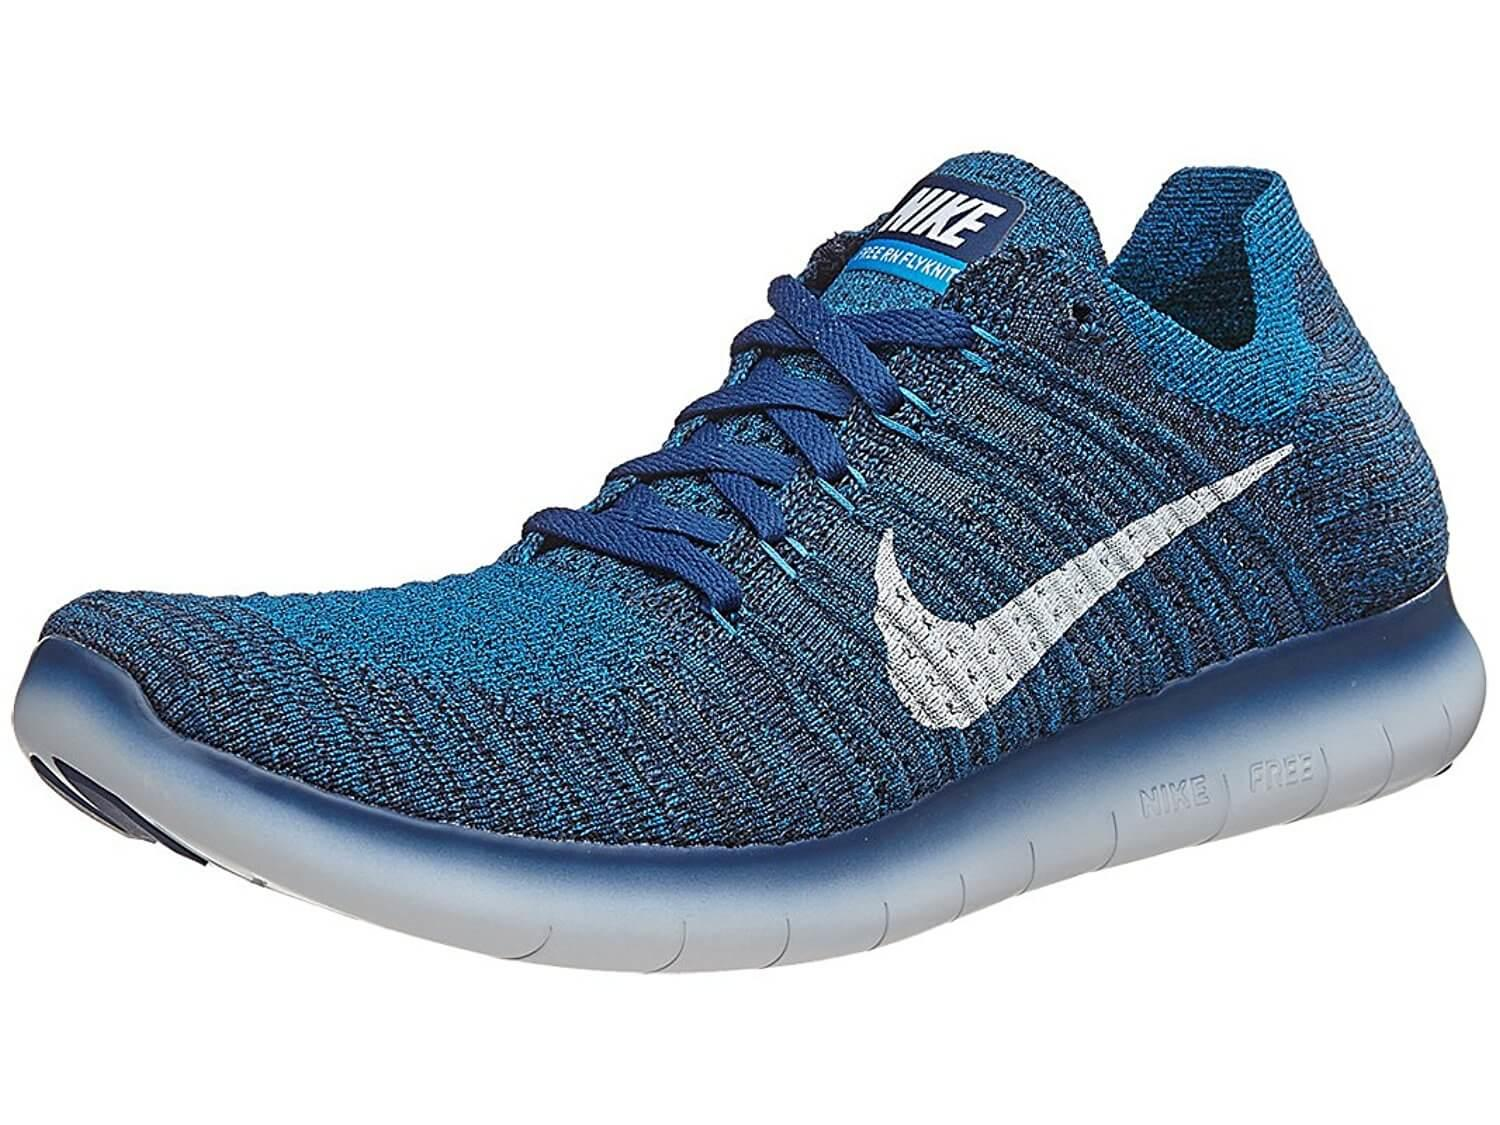 coupon code for nike free run flyknit opinie 2a519 7cfb3